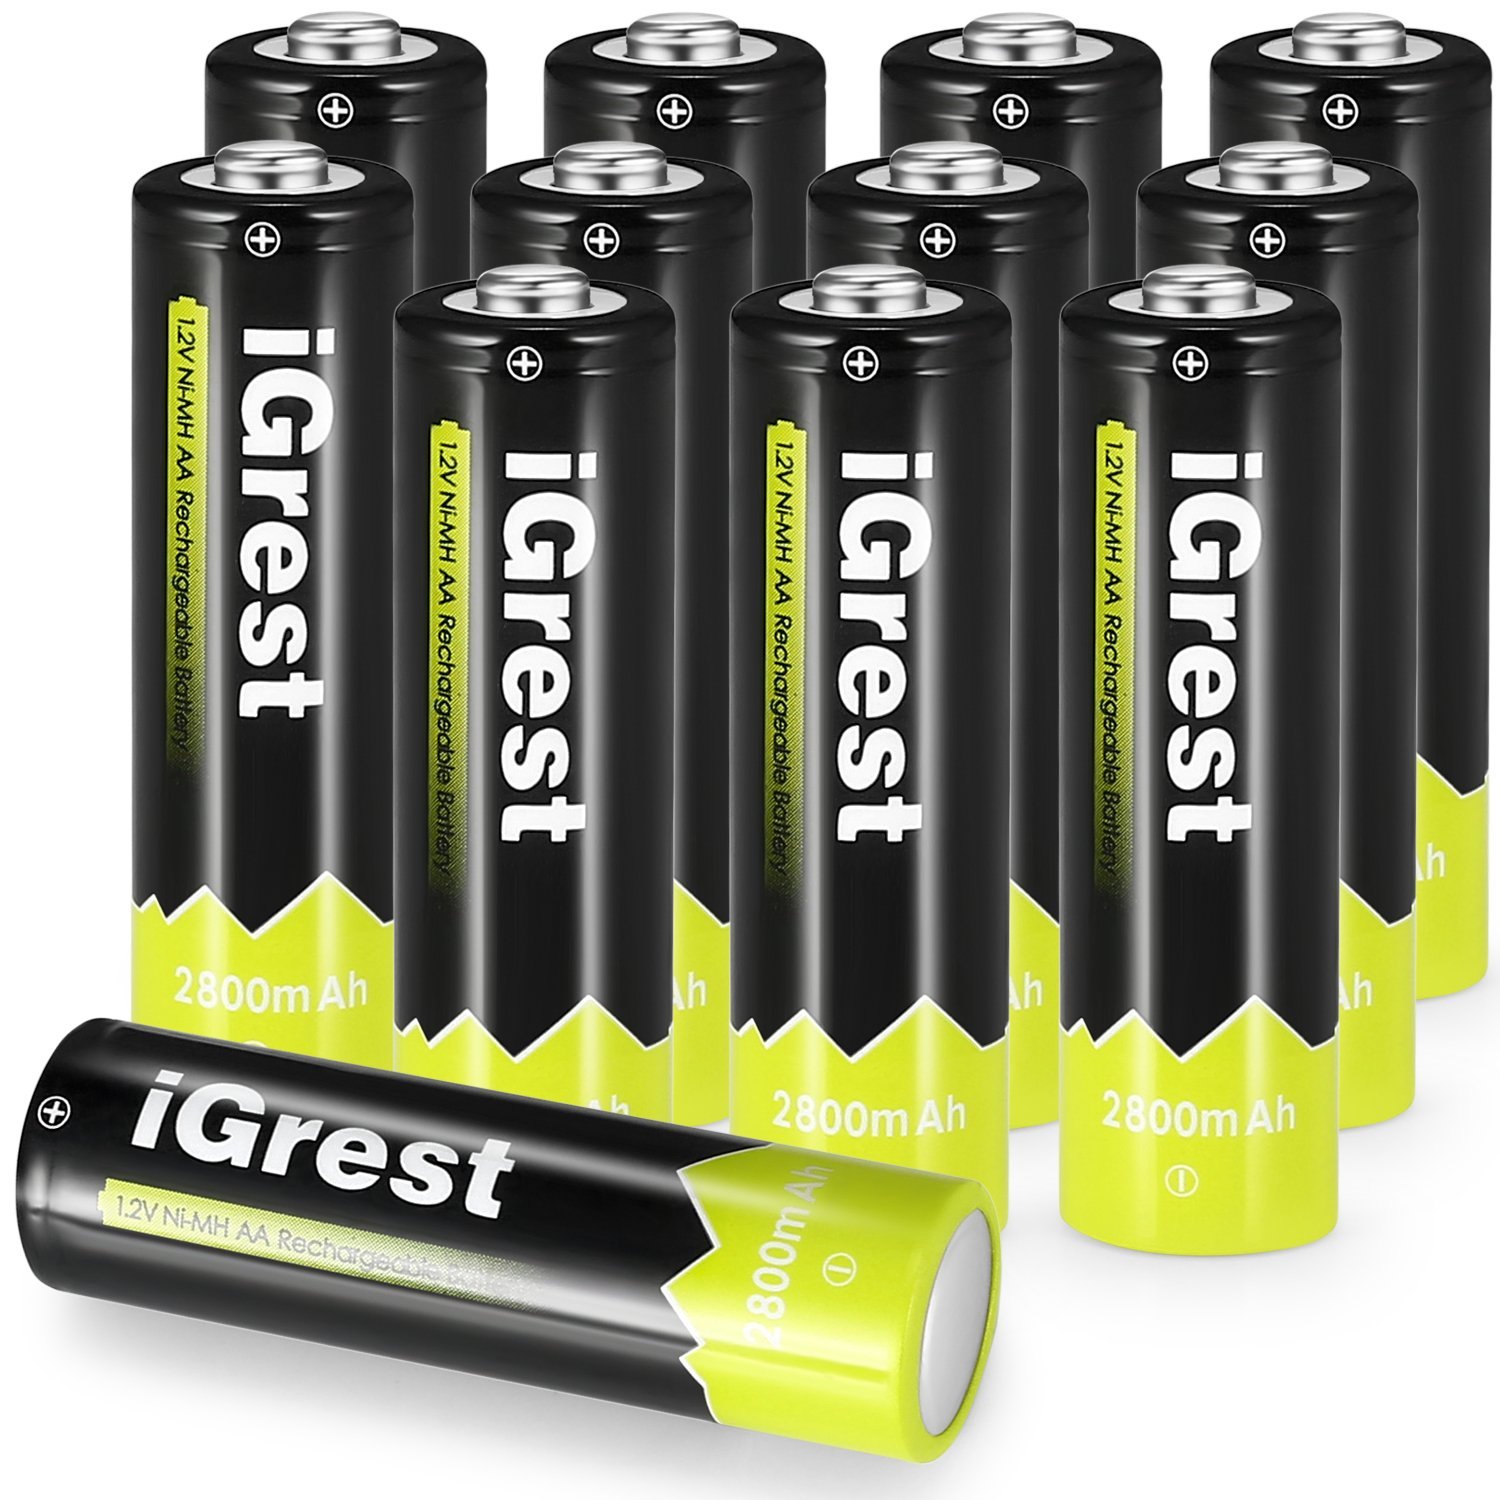 iGrest Rechargeable AA Batteries 2800mah Nimh Battery (12 pack)